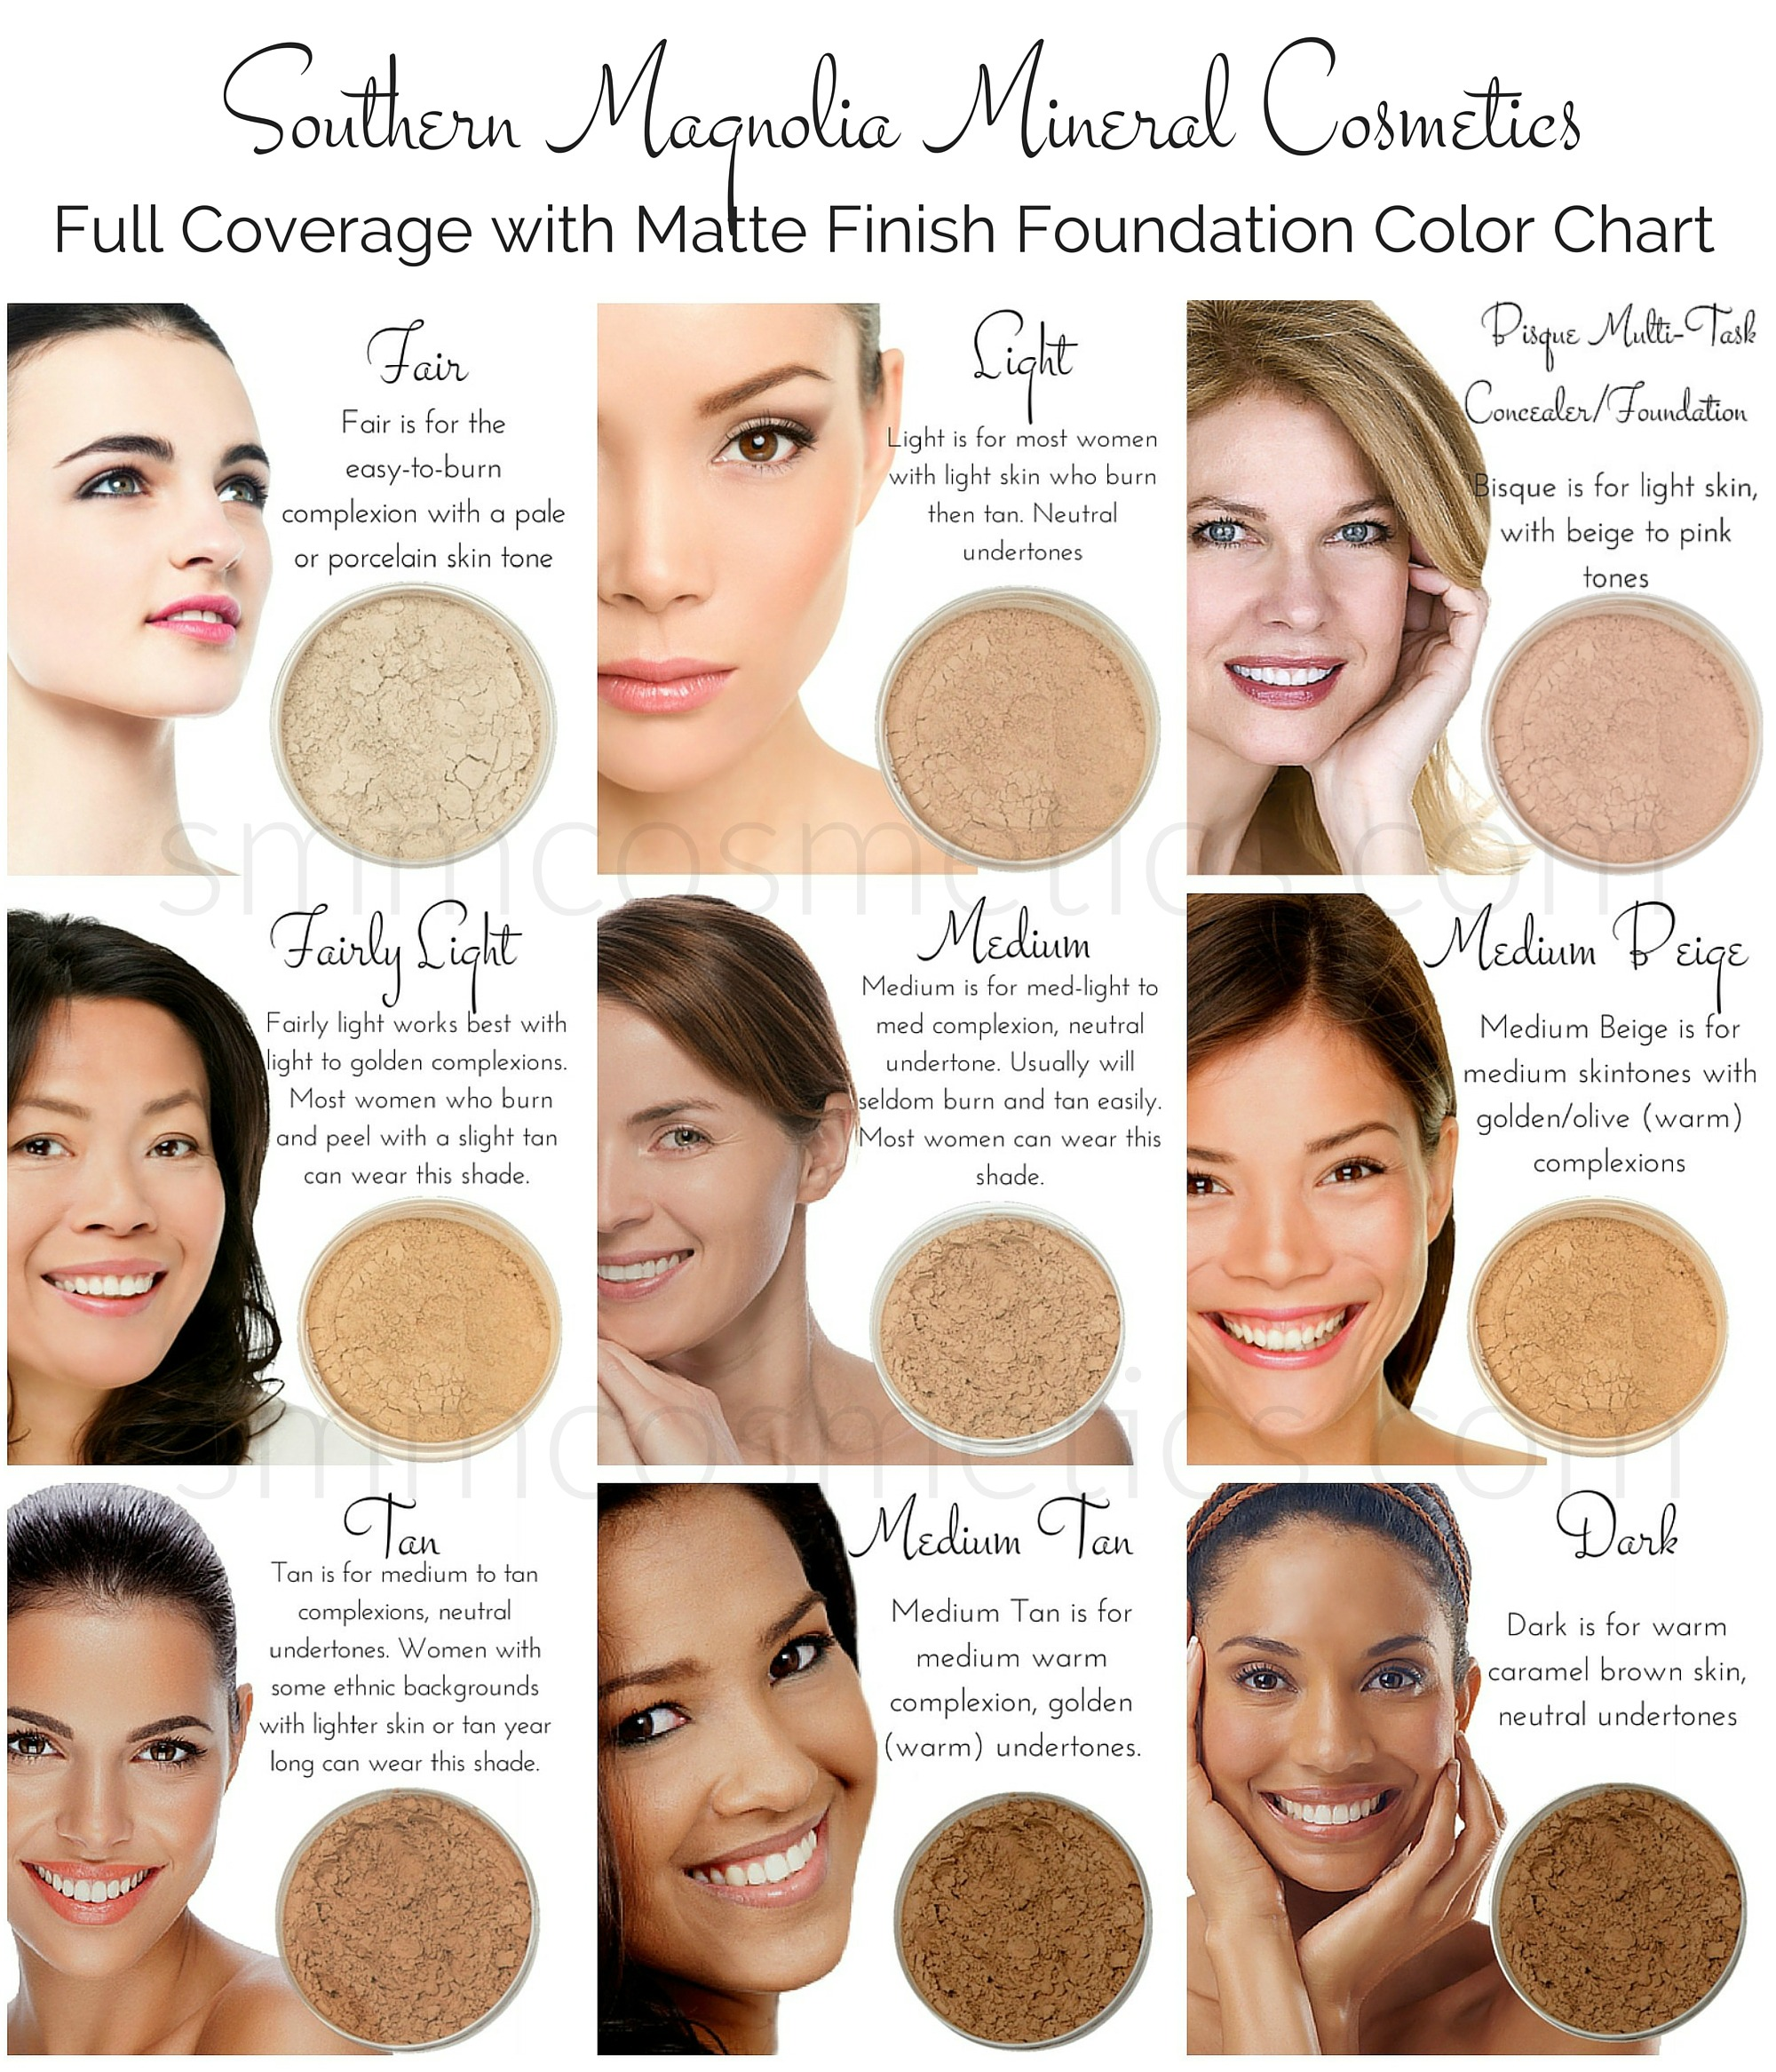 1 Full Coverage With Matte Finishcolor Chart Watermarked.